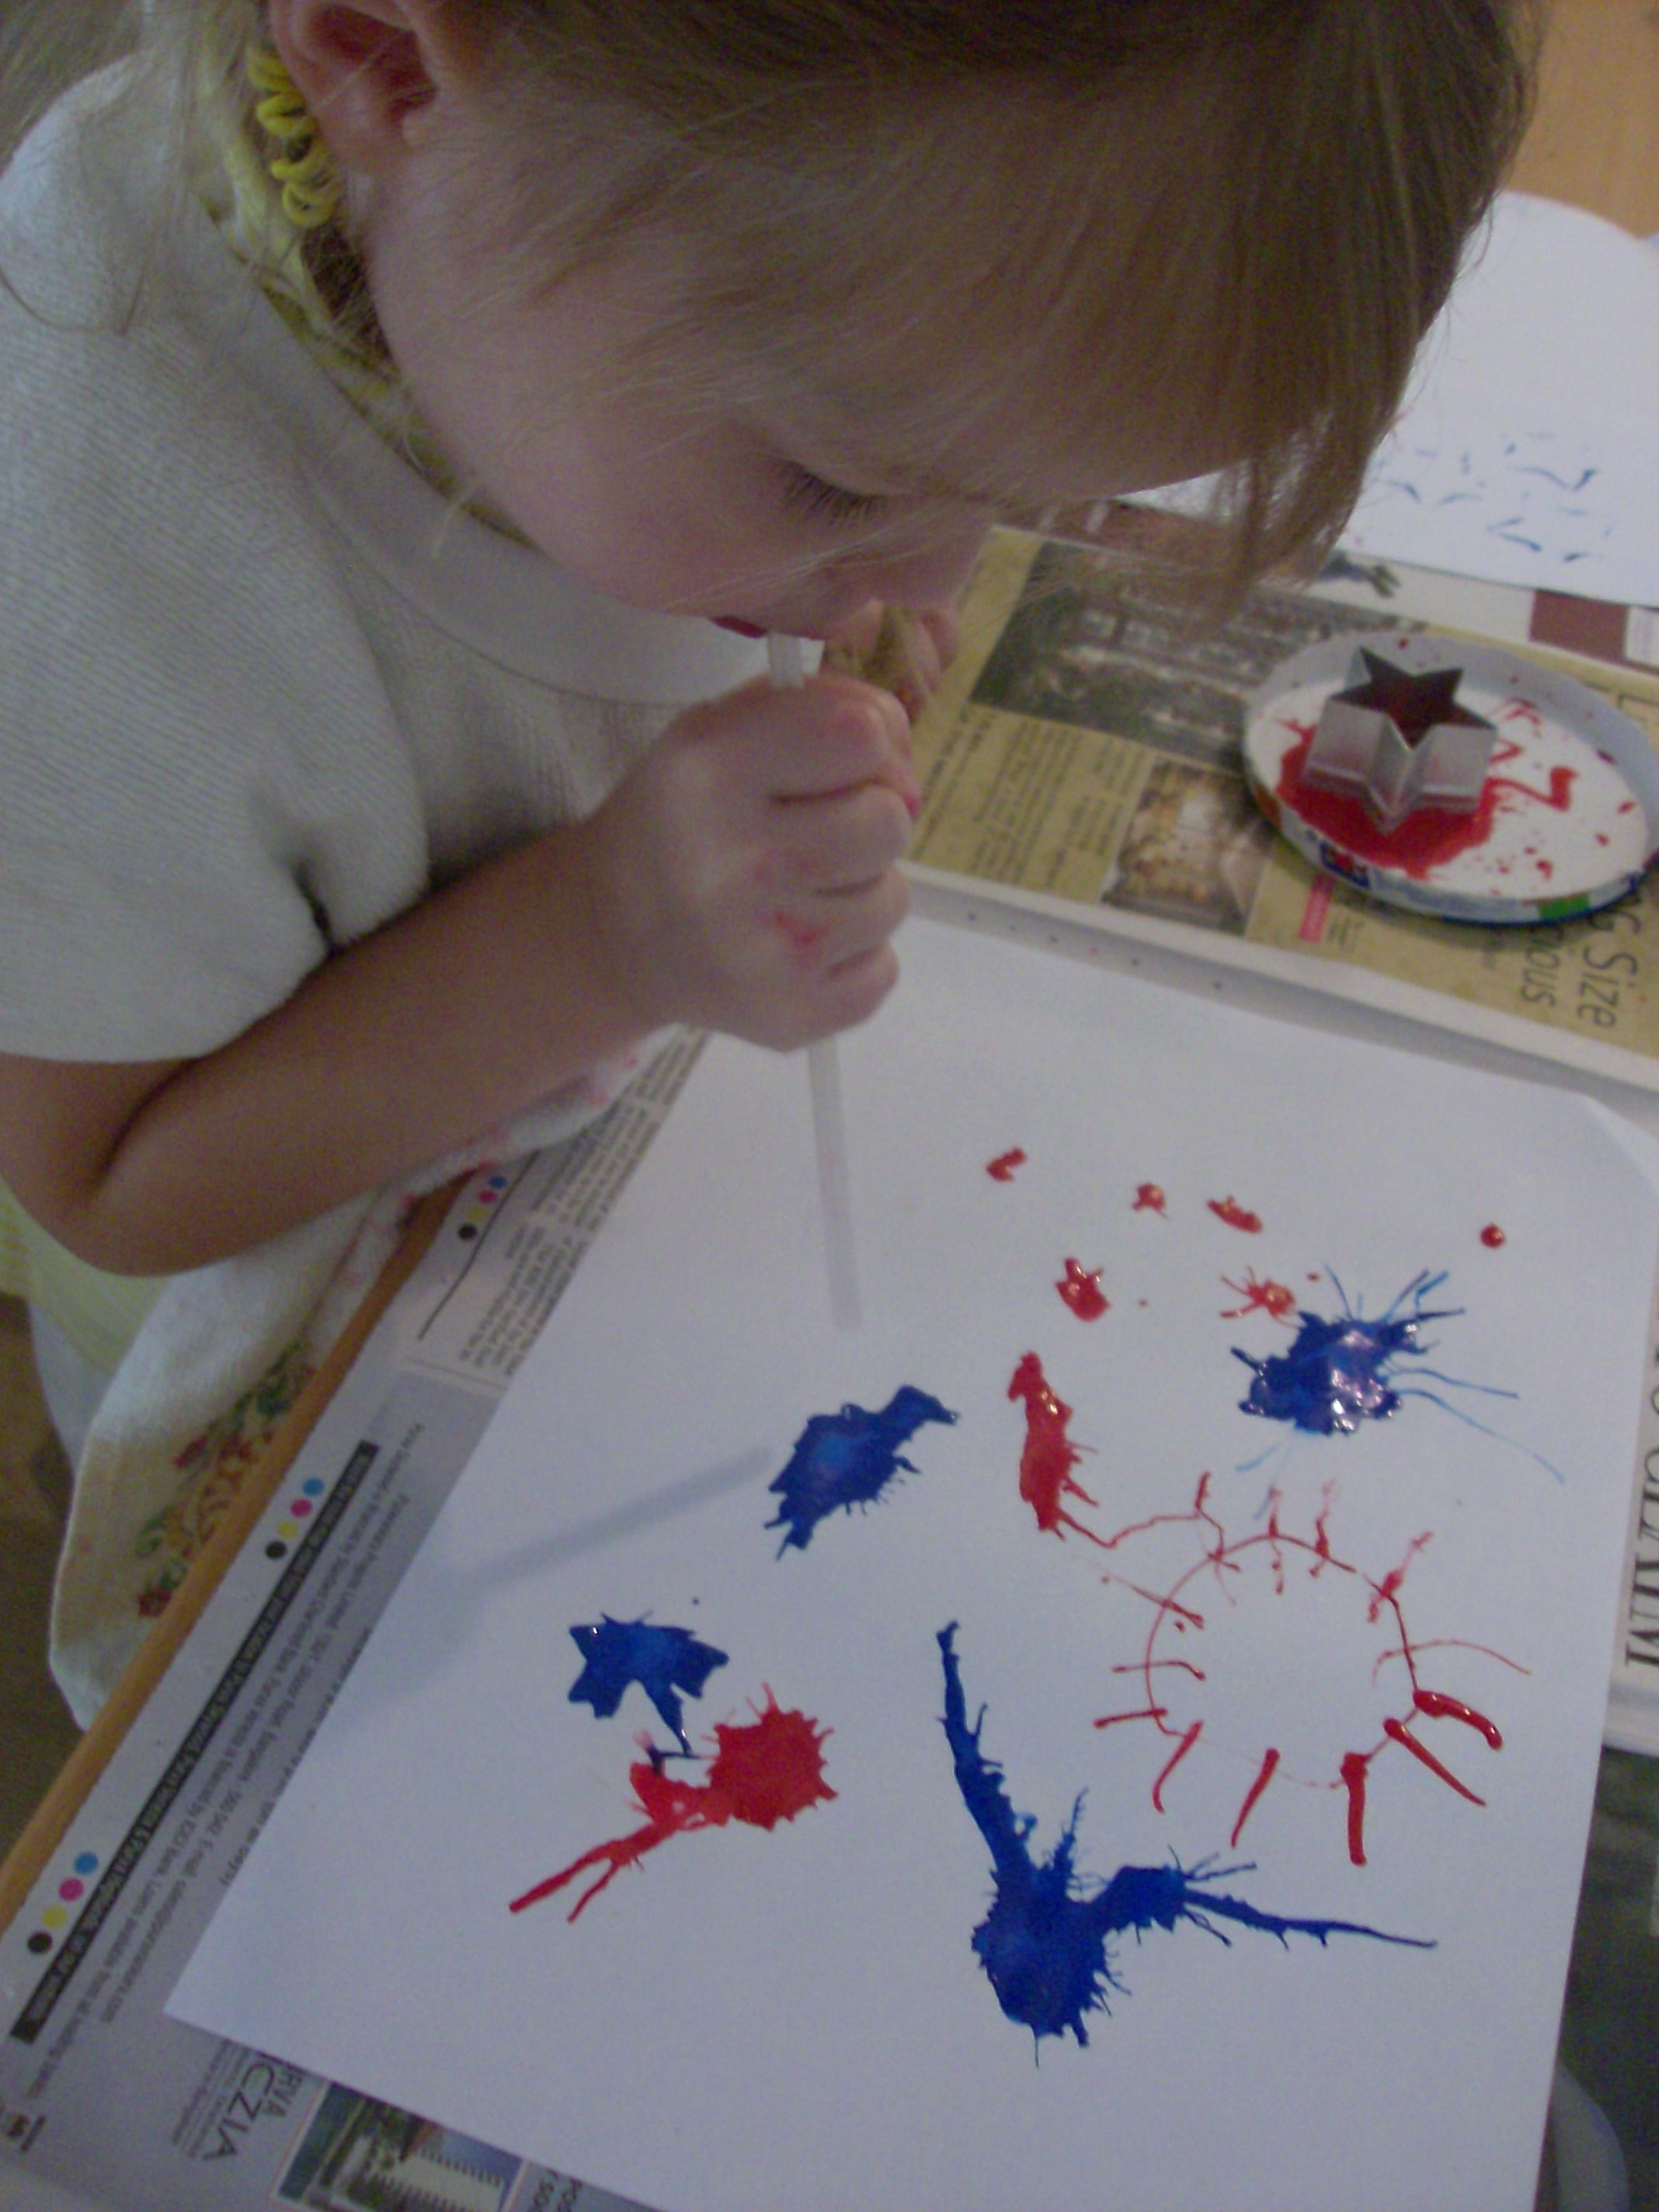 4th of July Craft: Paint Fireworks